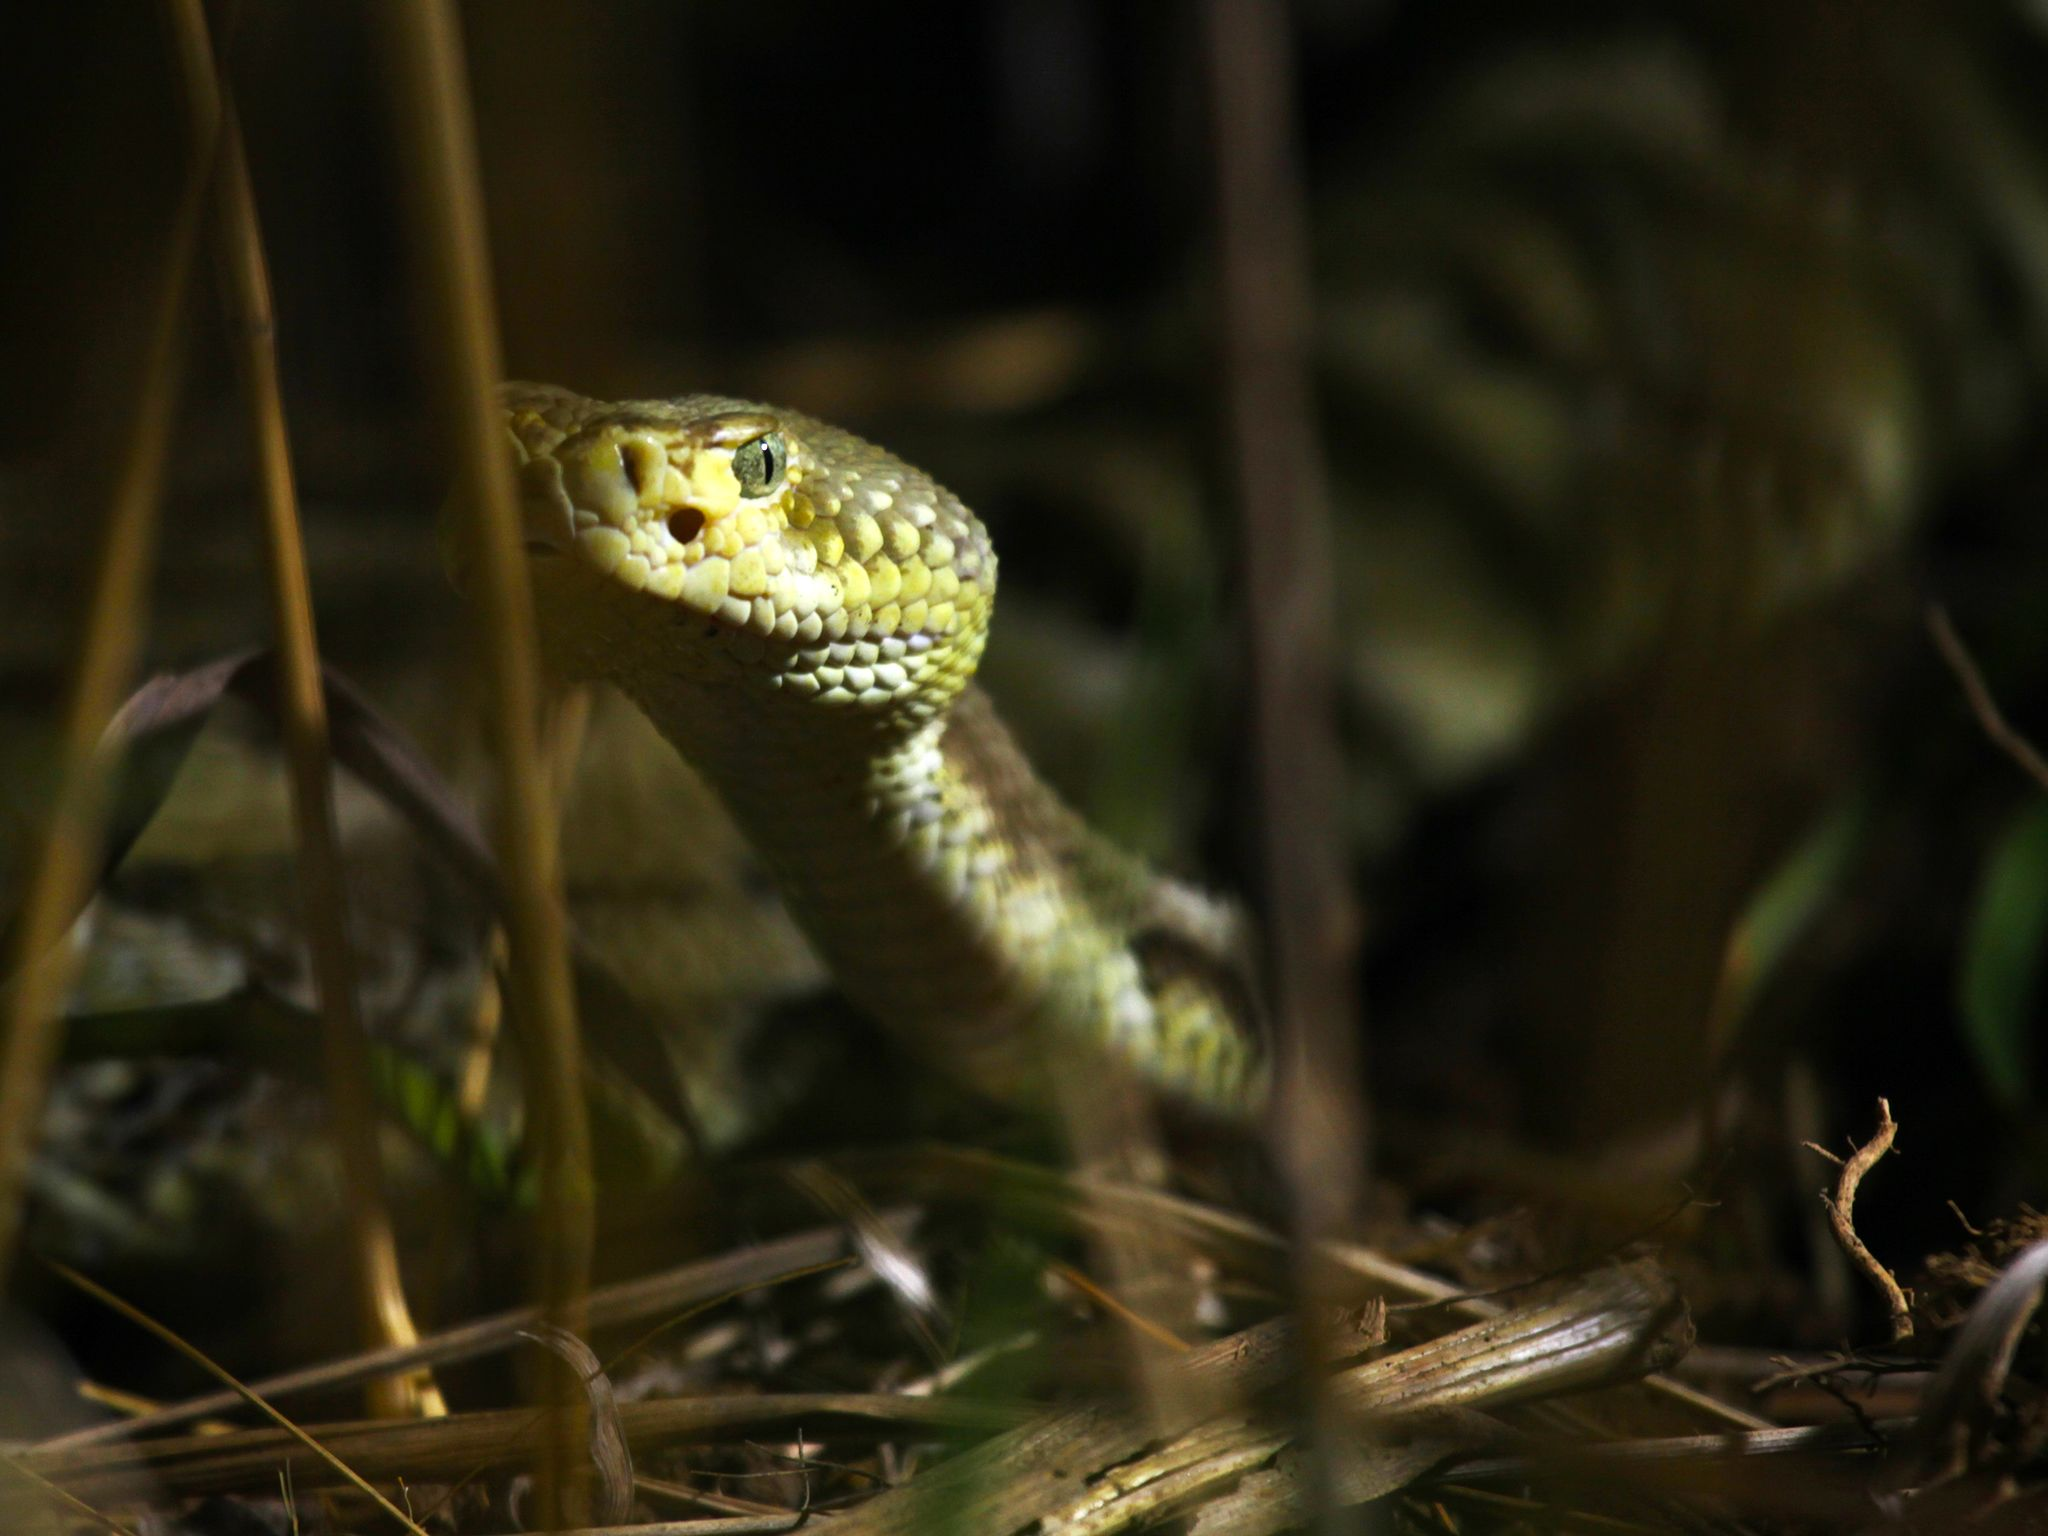 Prairie du Chien, WI USA: A timber rattlesnake moves through tall grass. This image is from... [Photo of the day - January 2015]